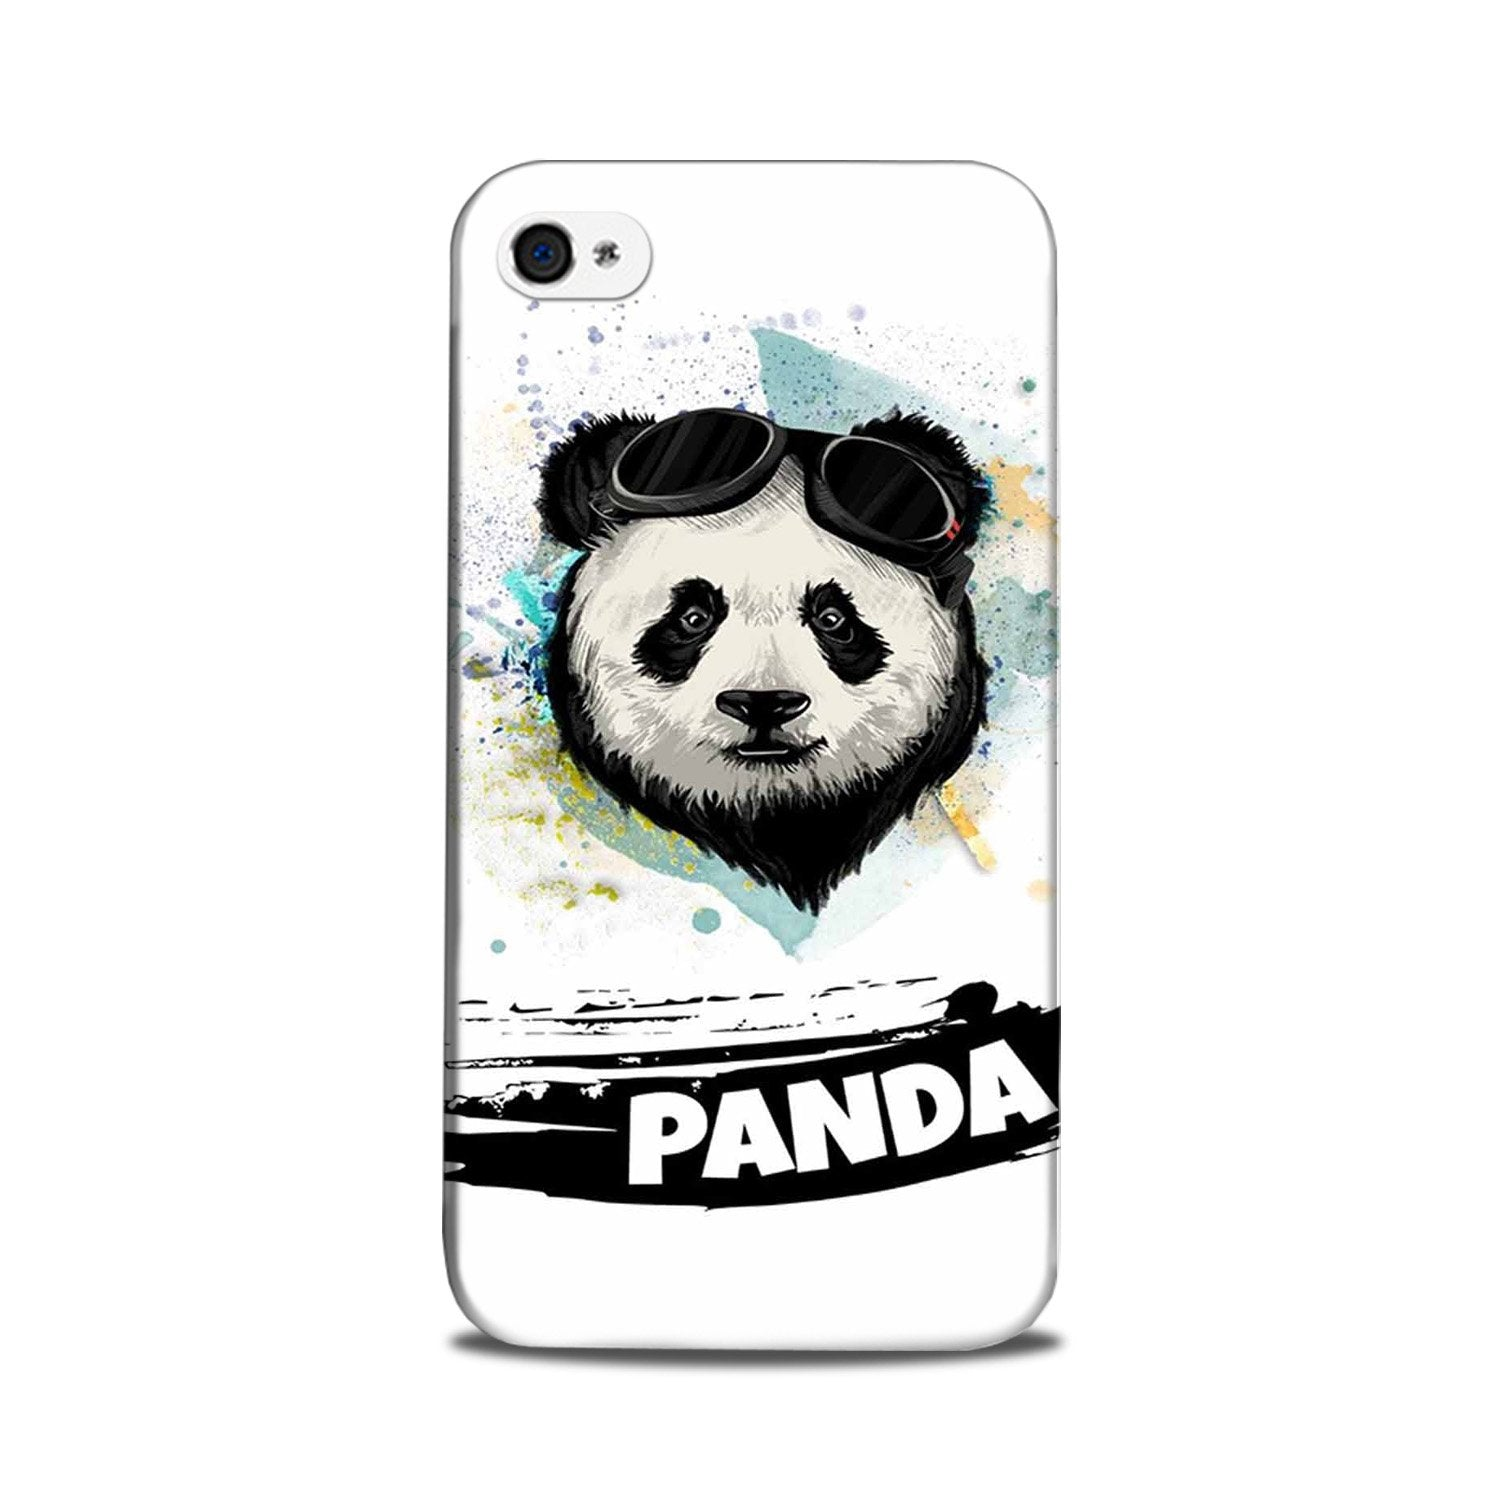 Panda Mobile Back Case for iPhone 5/ 5s  (Design - 319)